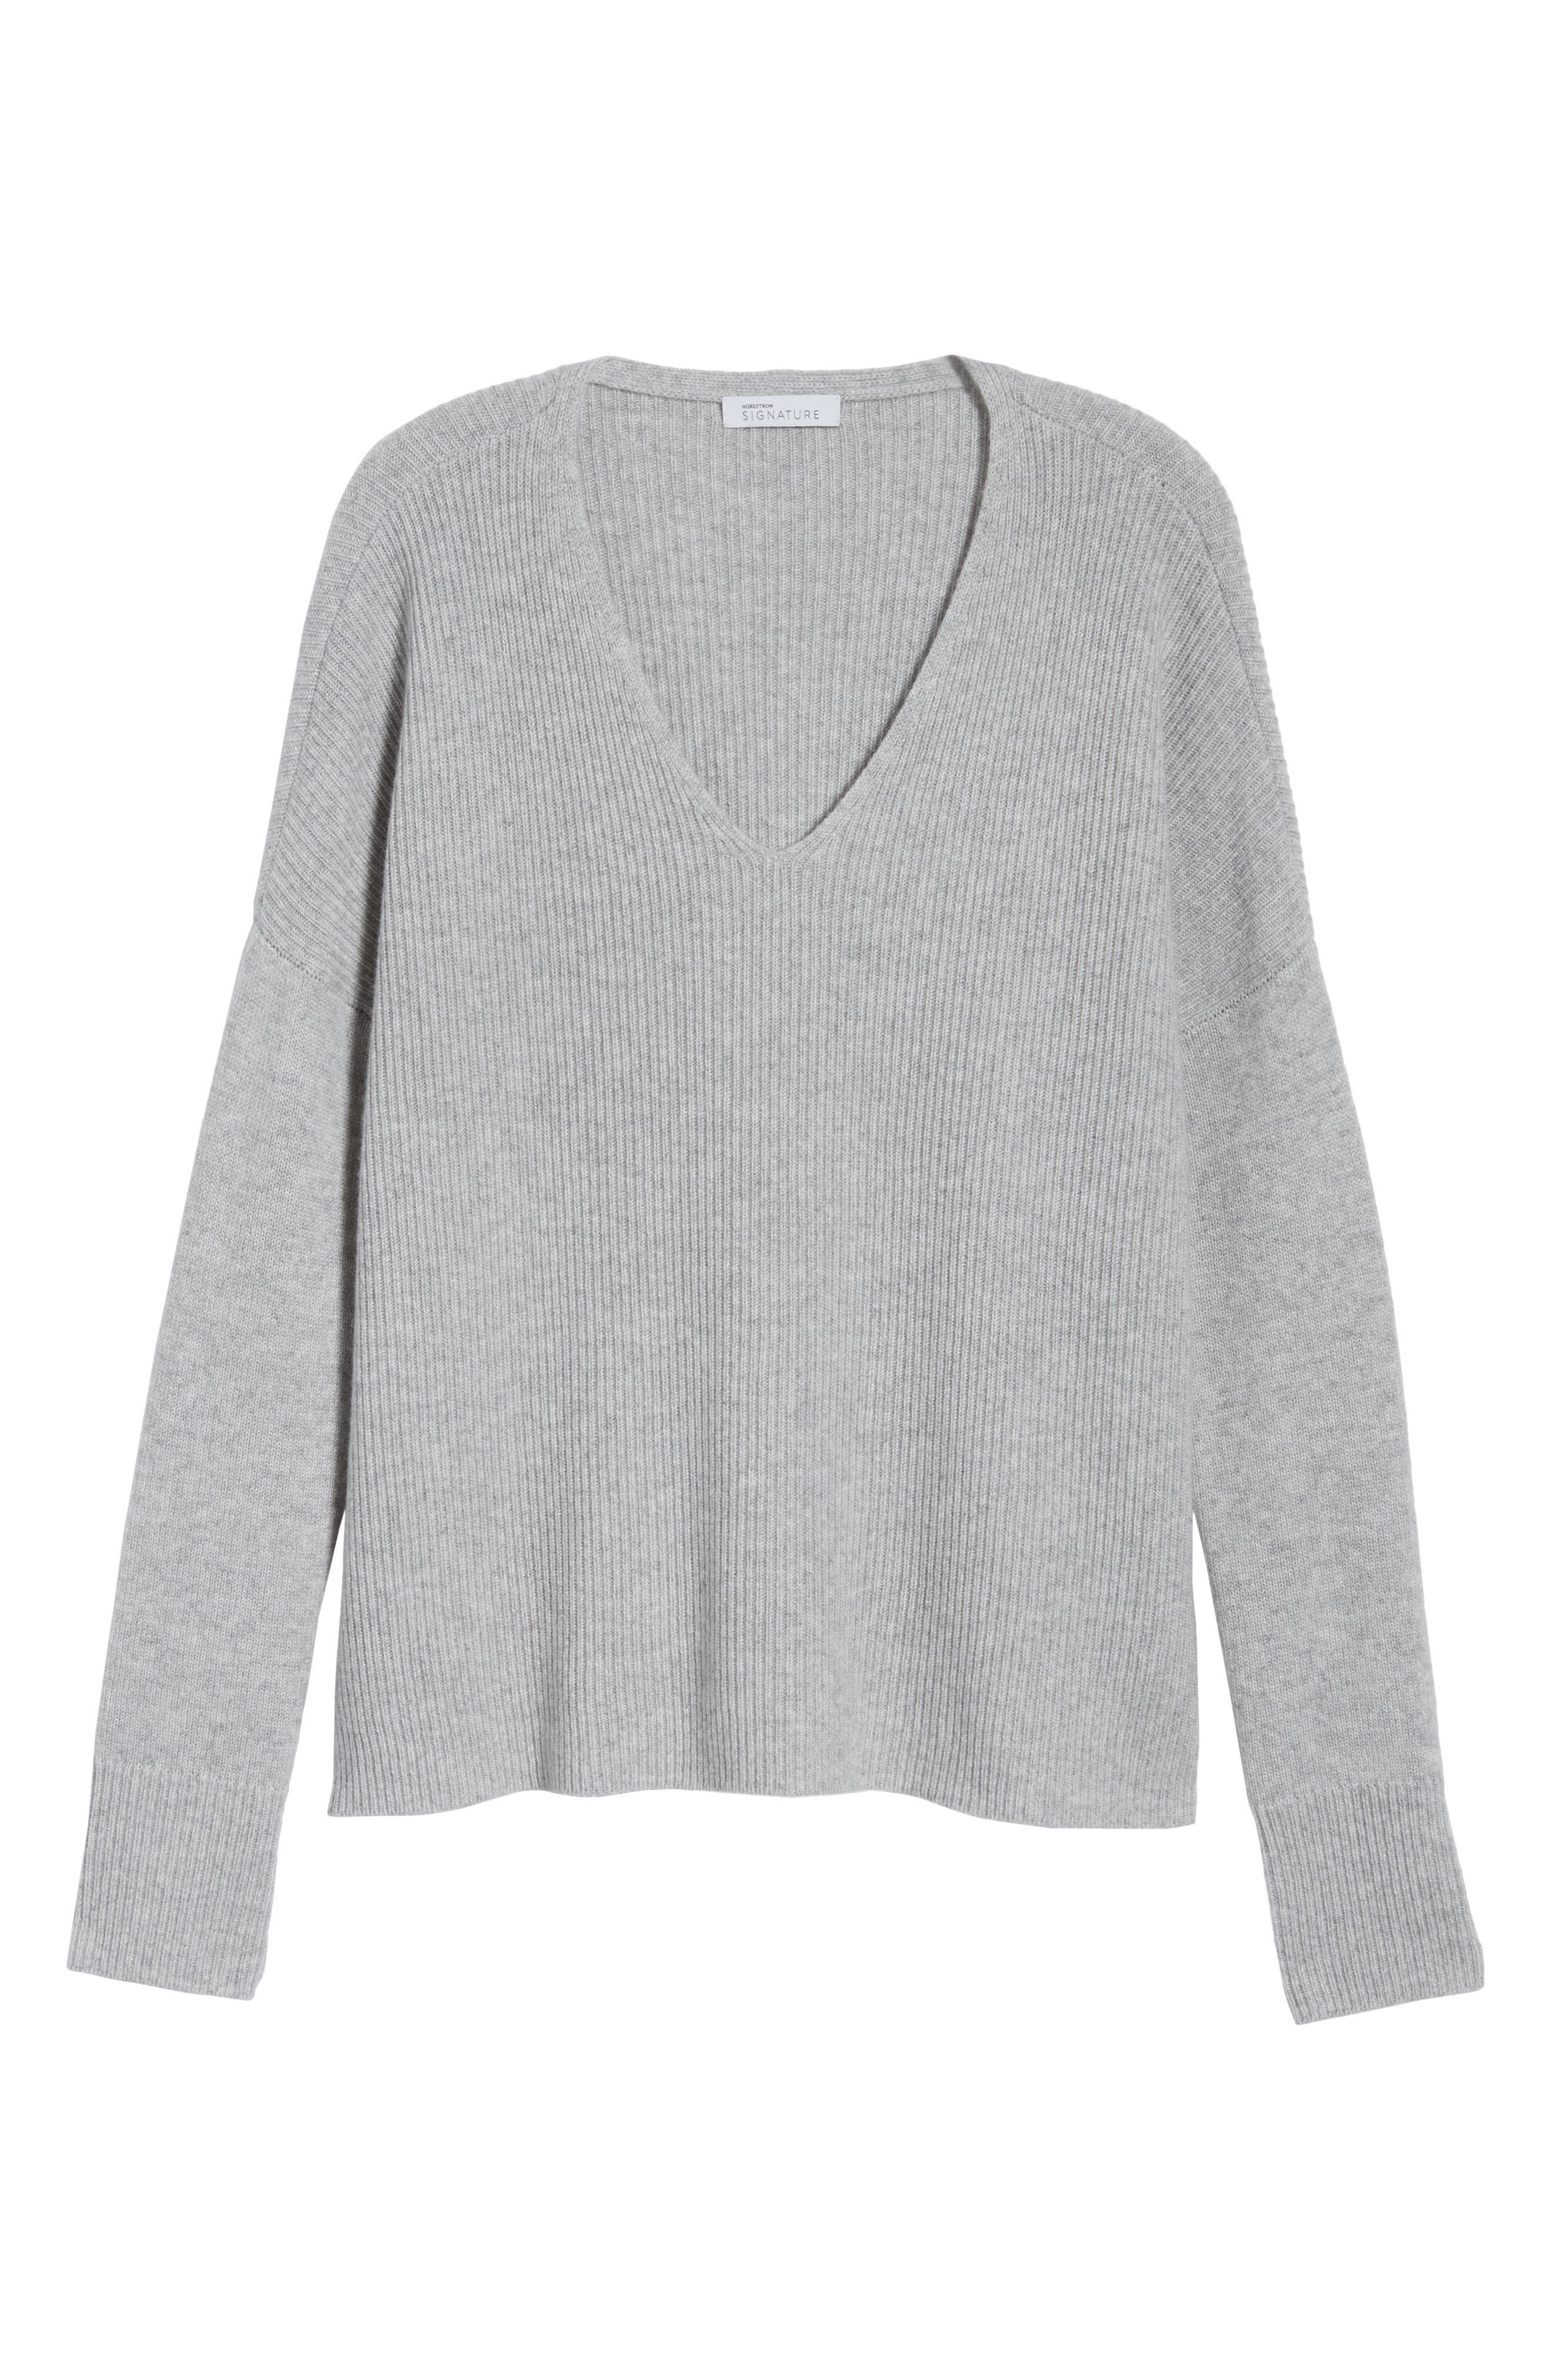 Cashmere Soft Ribbed Pullover Sweater,                             Alternate thumbnail 6, color,                             050